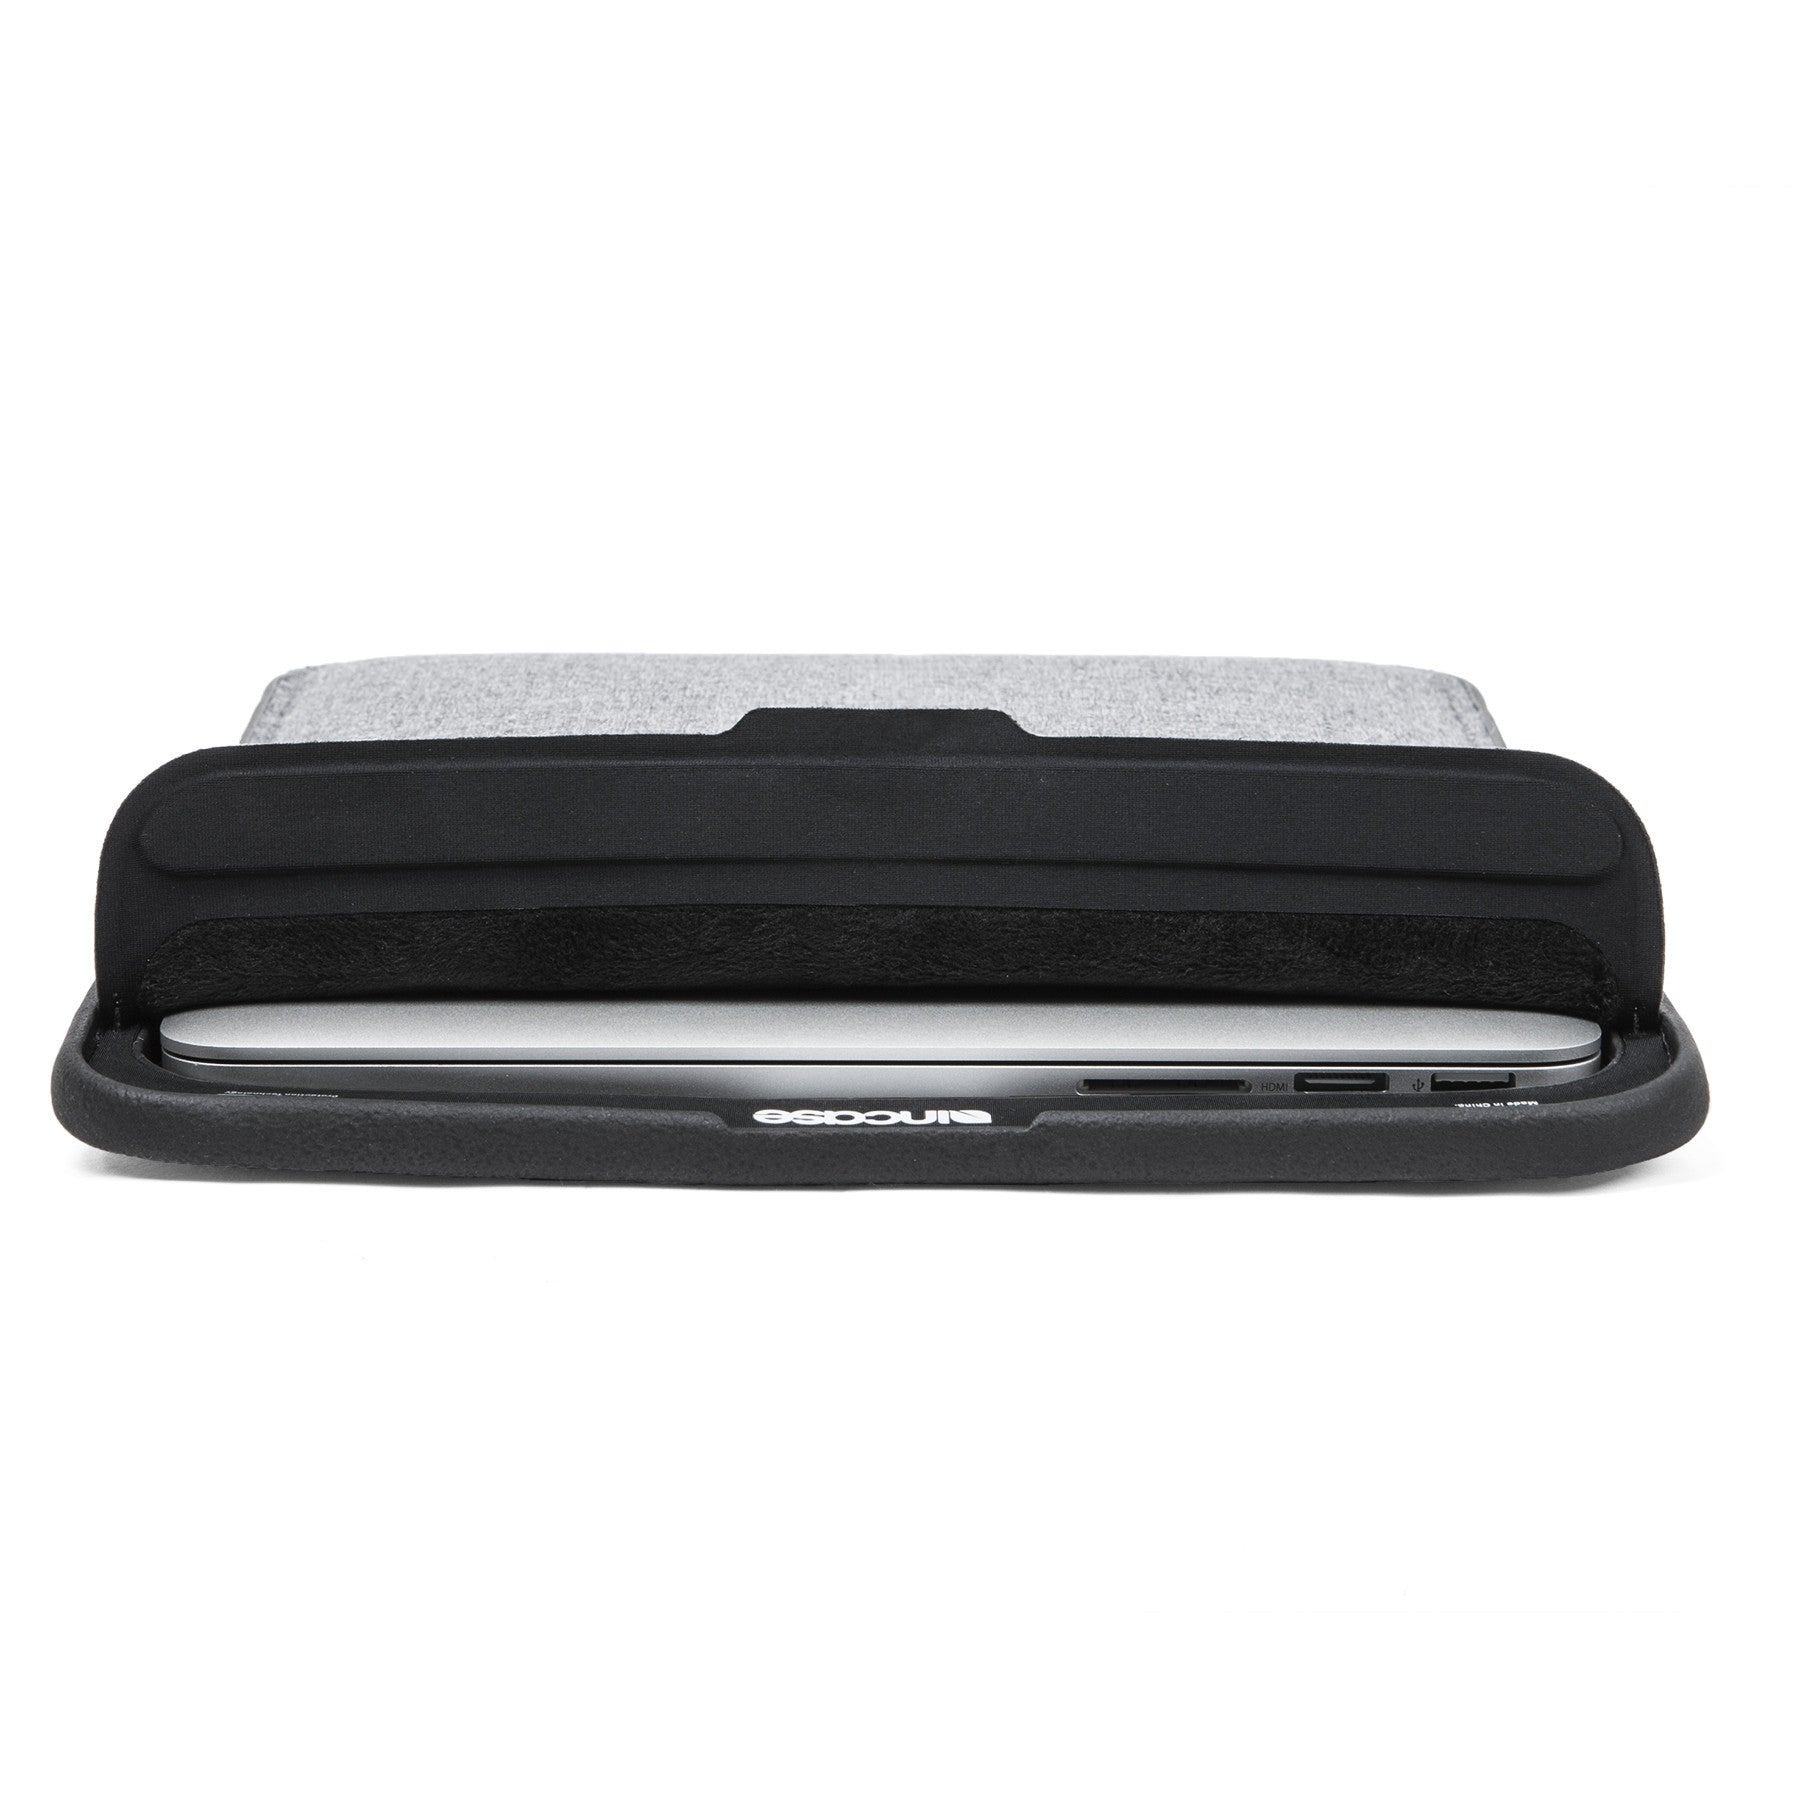 Incase - ICON Sleeve with TENSAERLite for Macbook Pro 13 inch